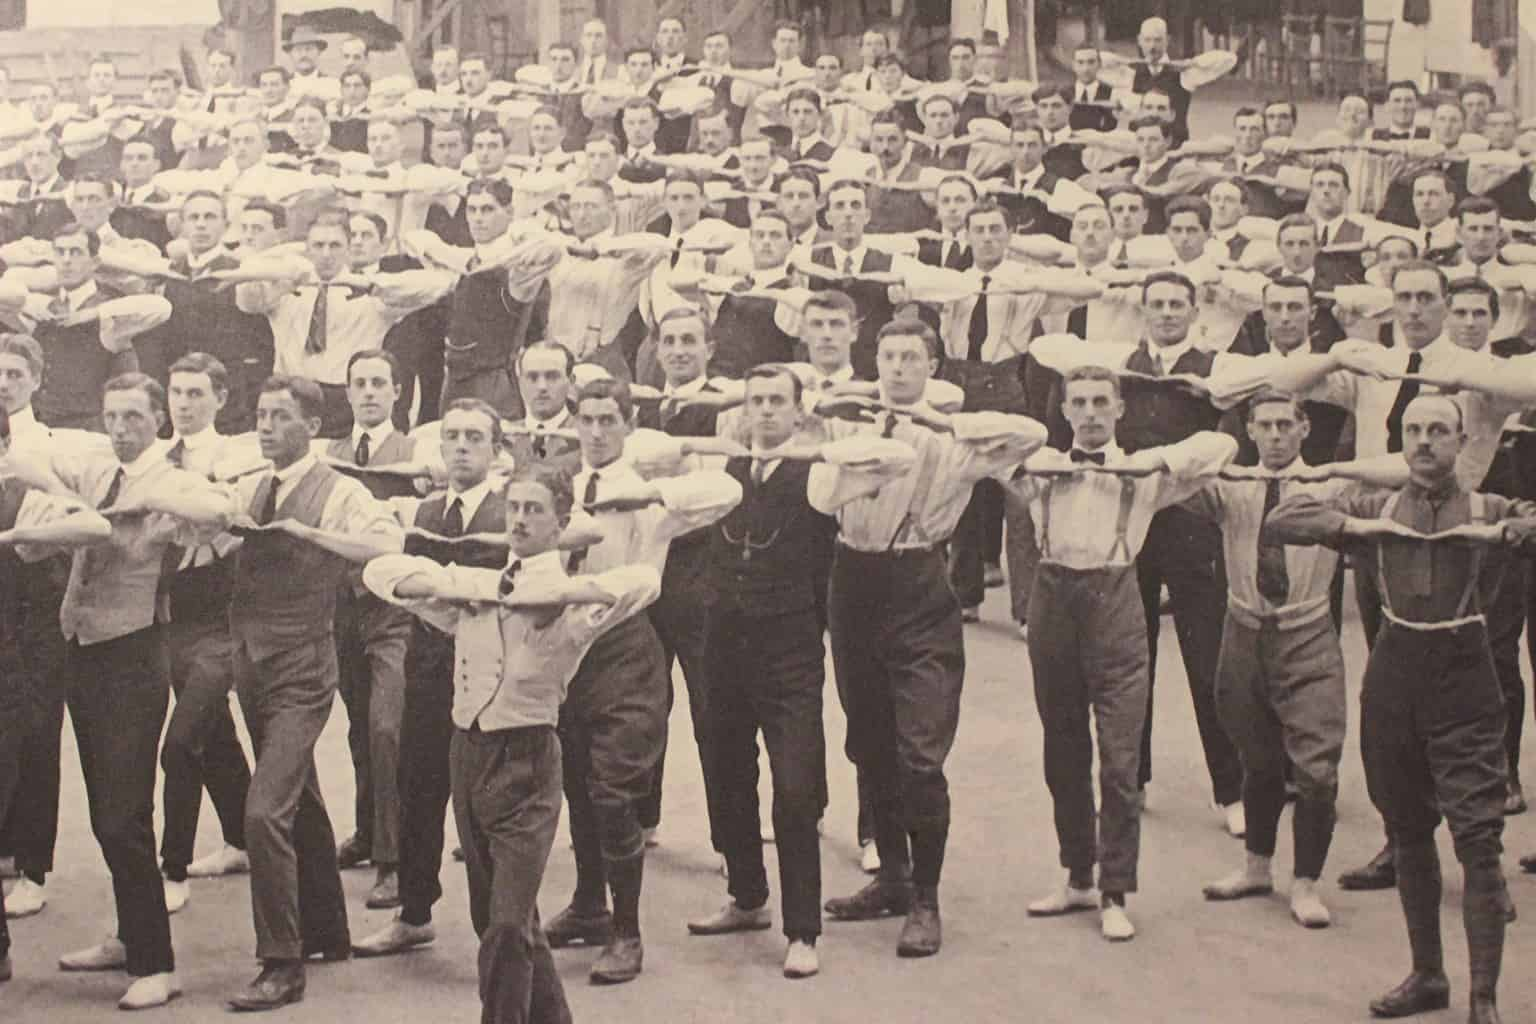 A black and white photo of soldiers exercising before World War I.